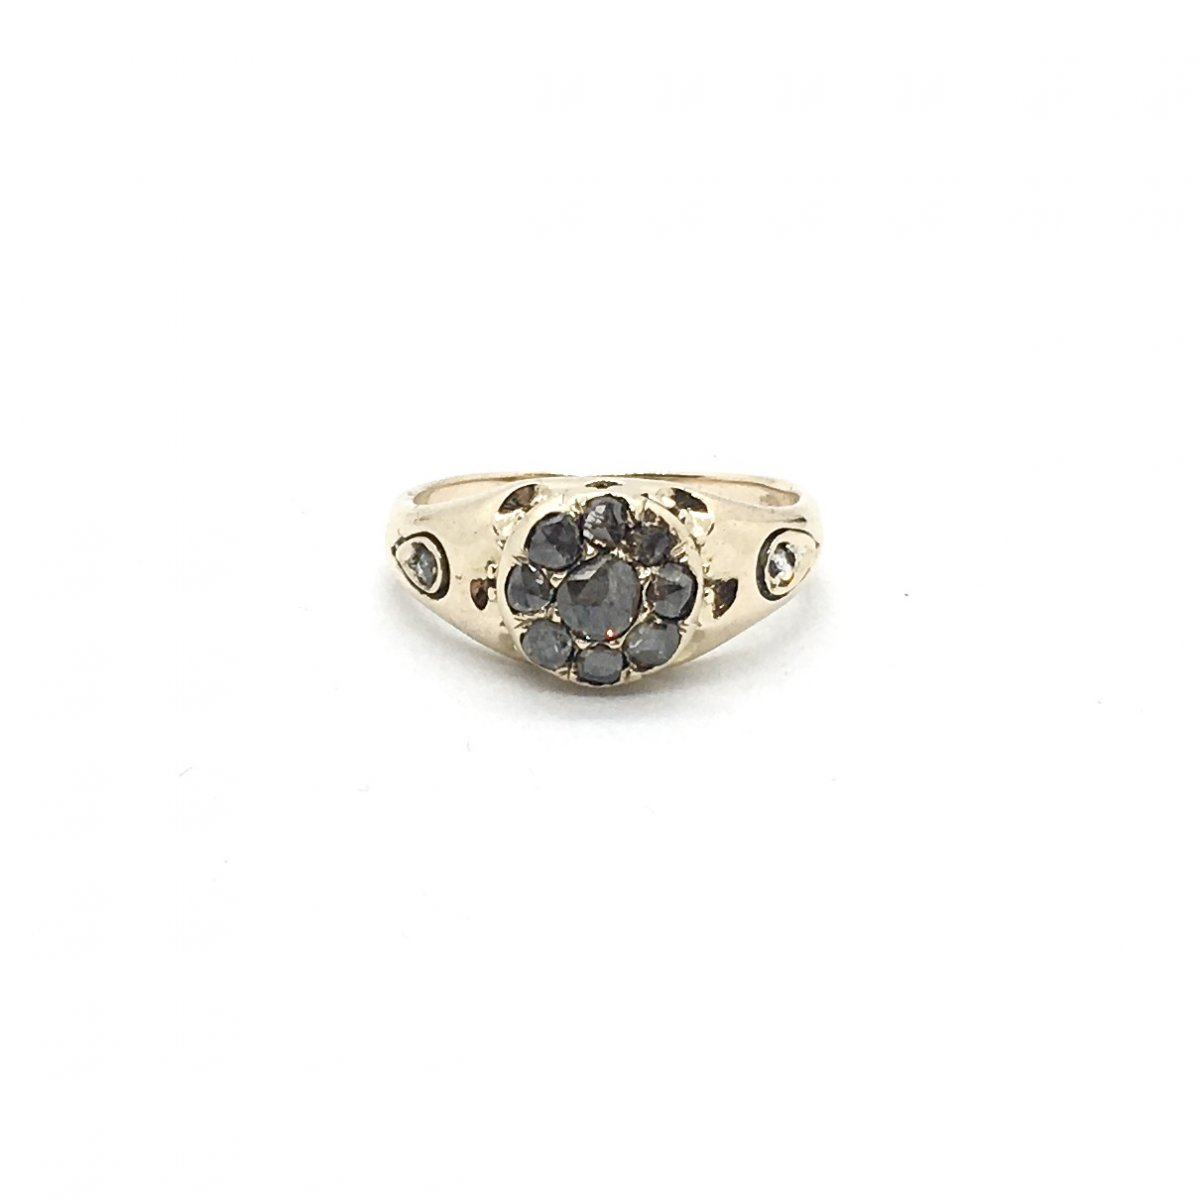 2136. Antique Gold Ring With Diamonds